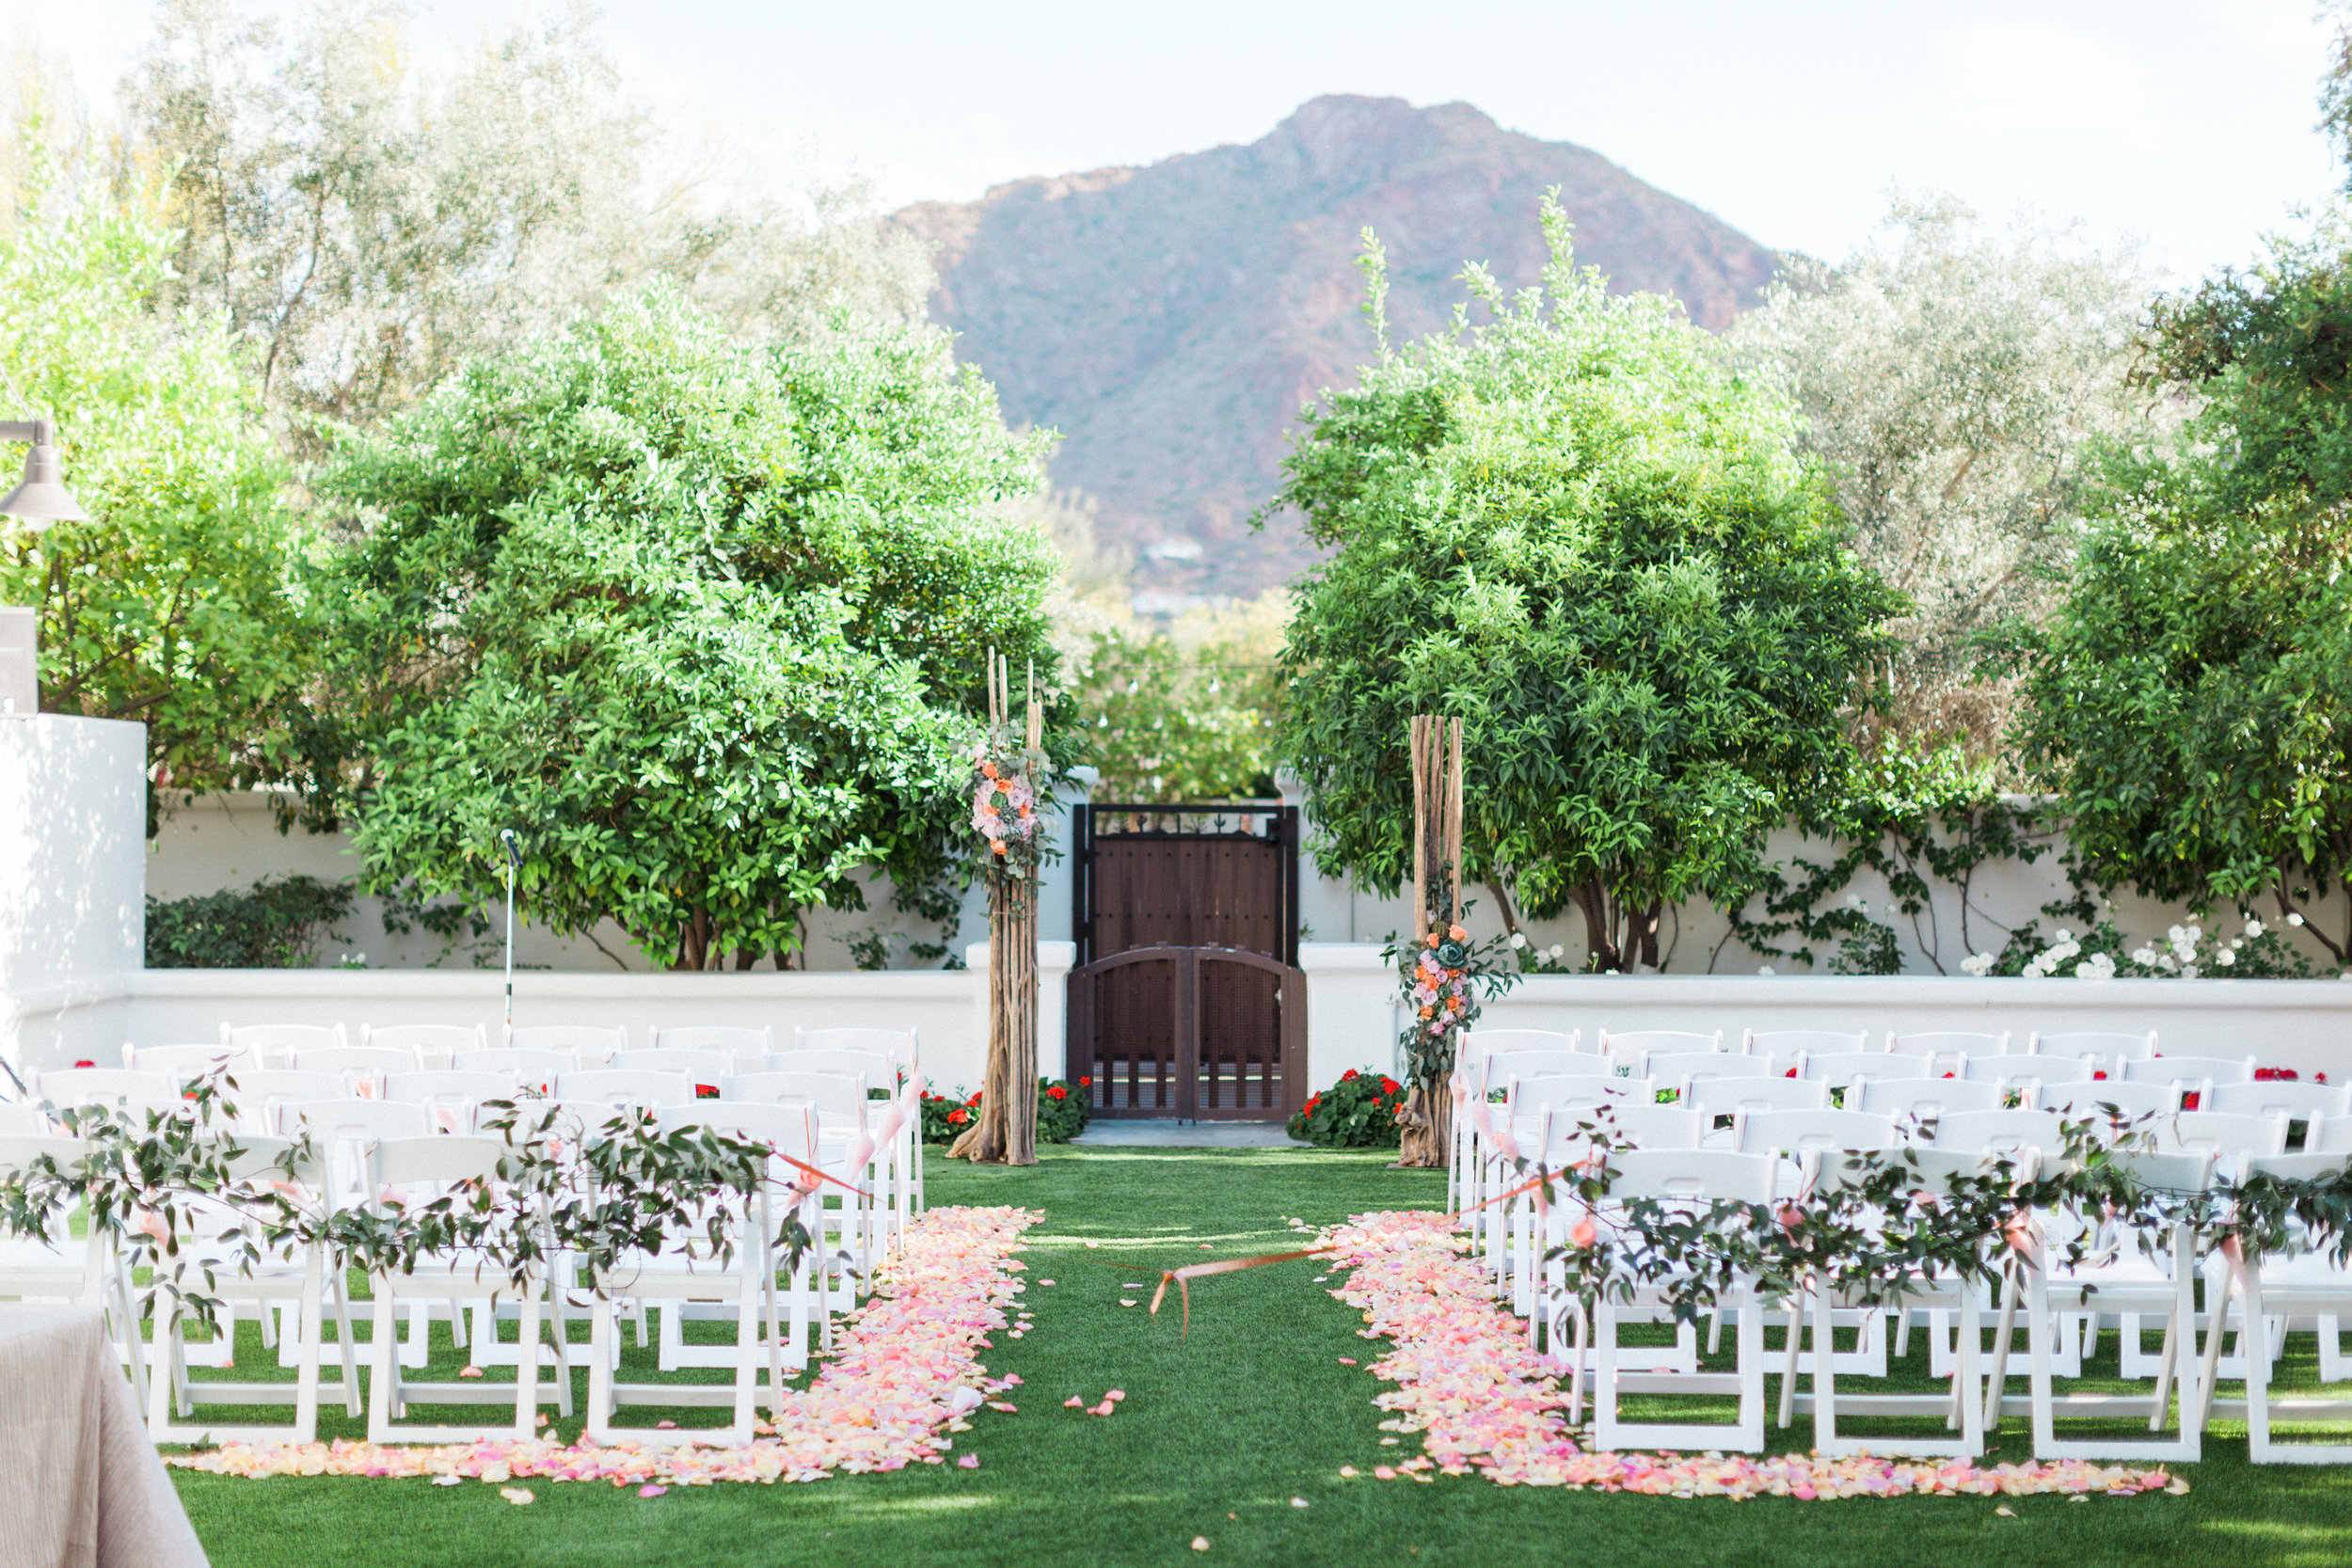 wedding decor, wedding planner, phoenix wedding, scottsdale wedding, arizona wedding, arizona wedding planner, destination wedding, wedding ceremony